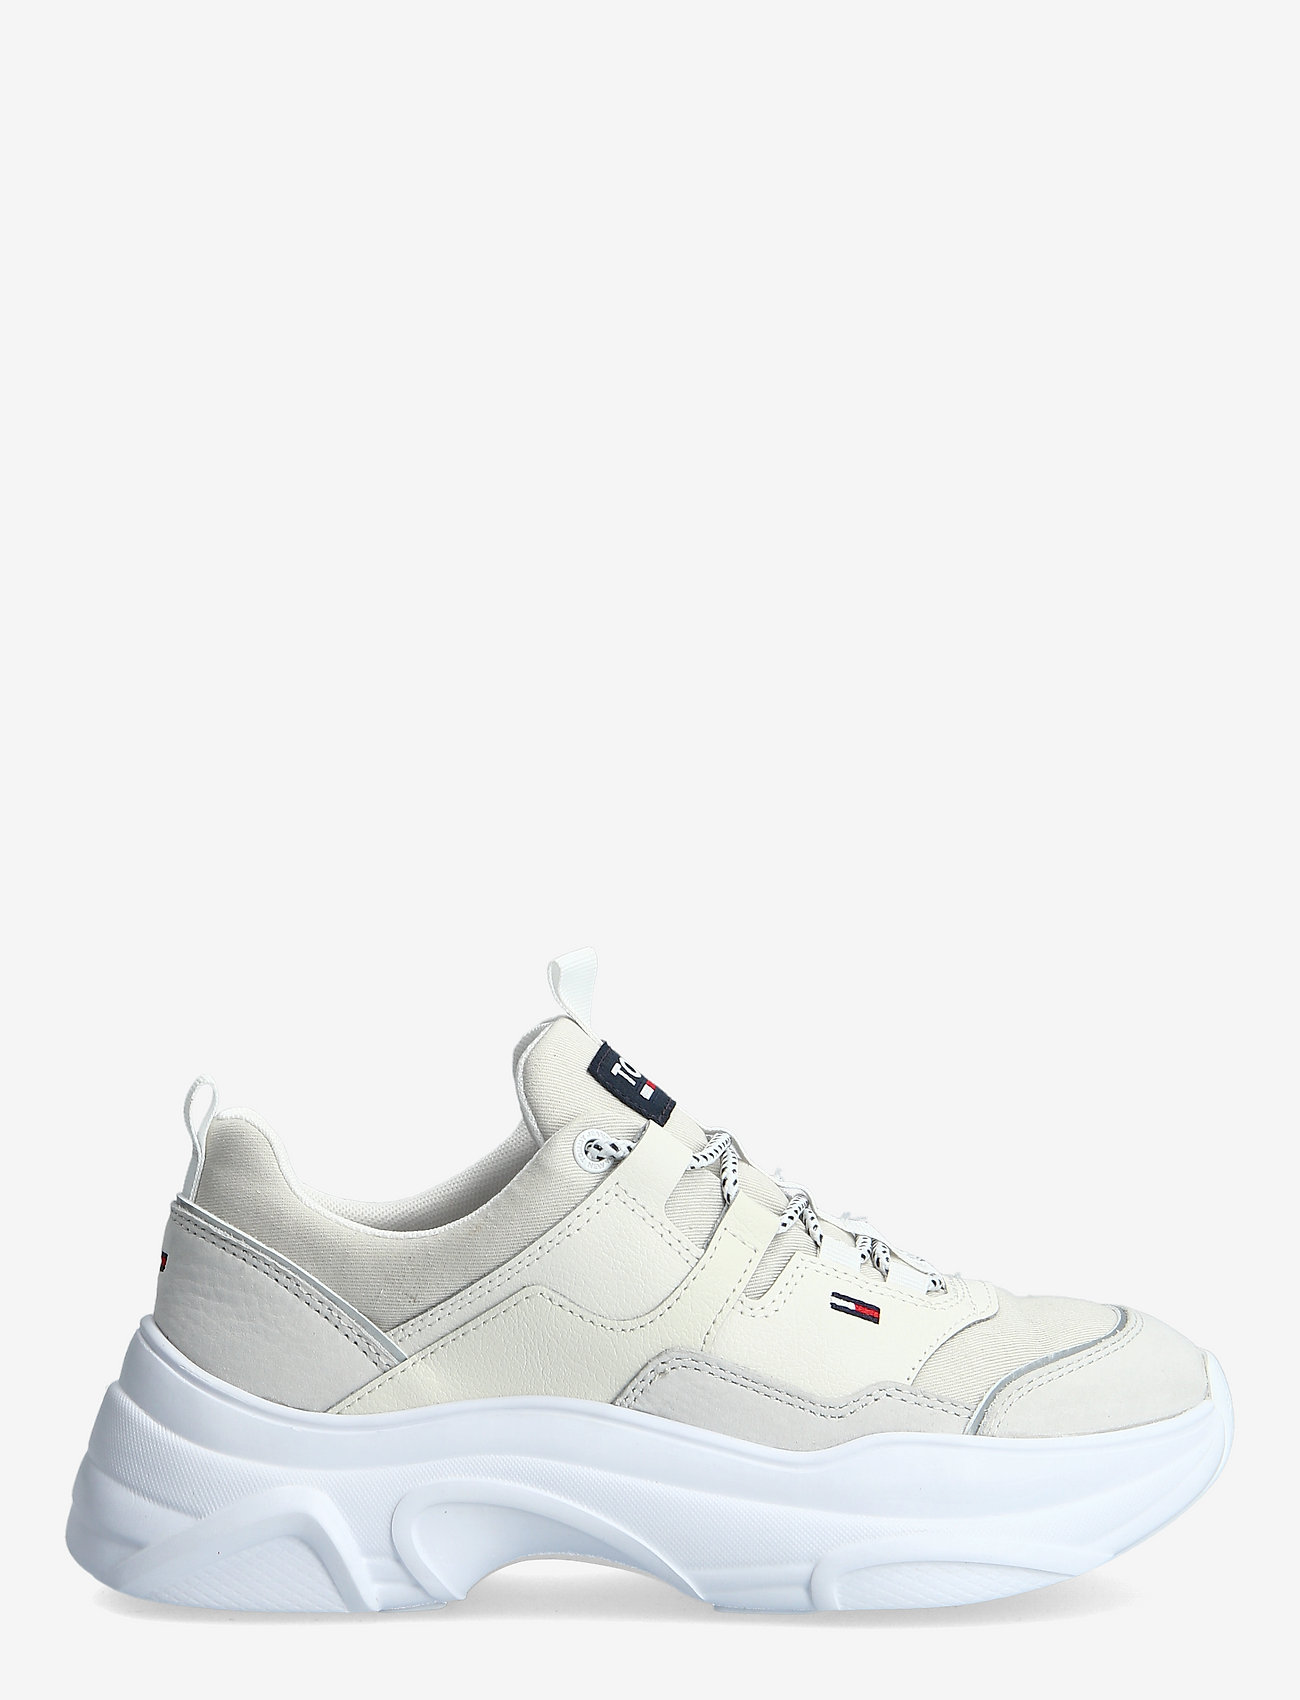 Tommy Hilfiger - TOMMY JEANS LIGHTWEIGHT SHOE - chunky sneakers - white - 1